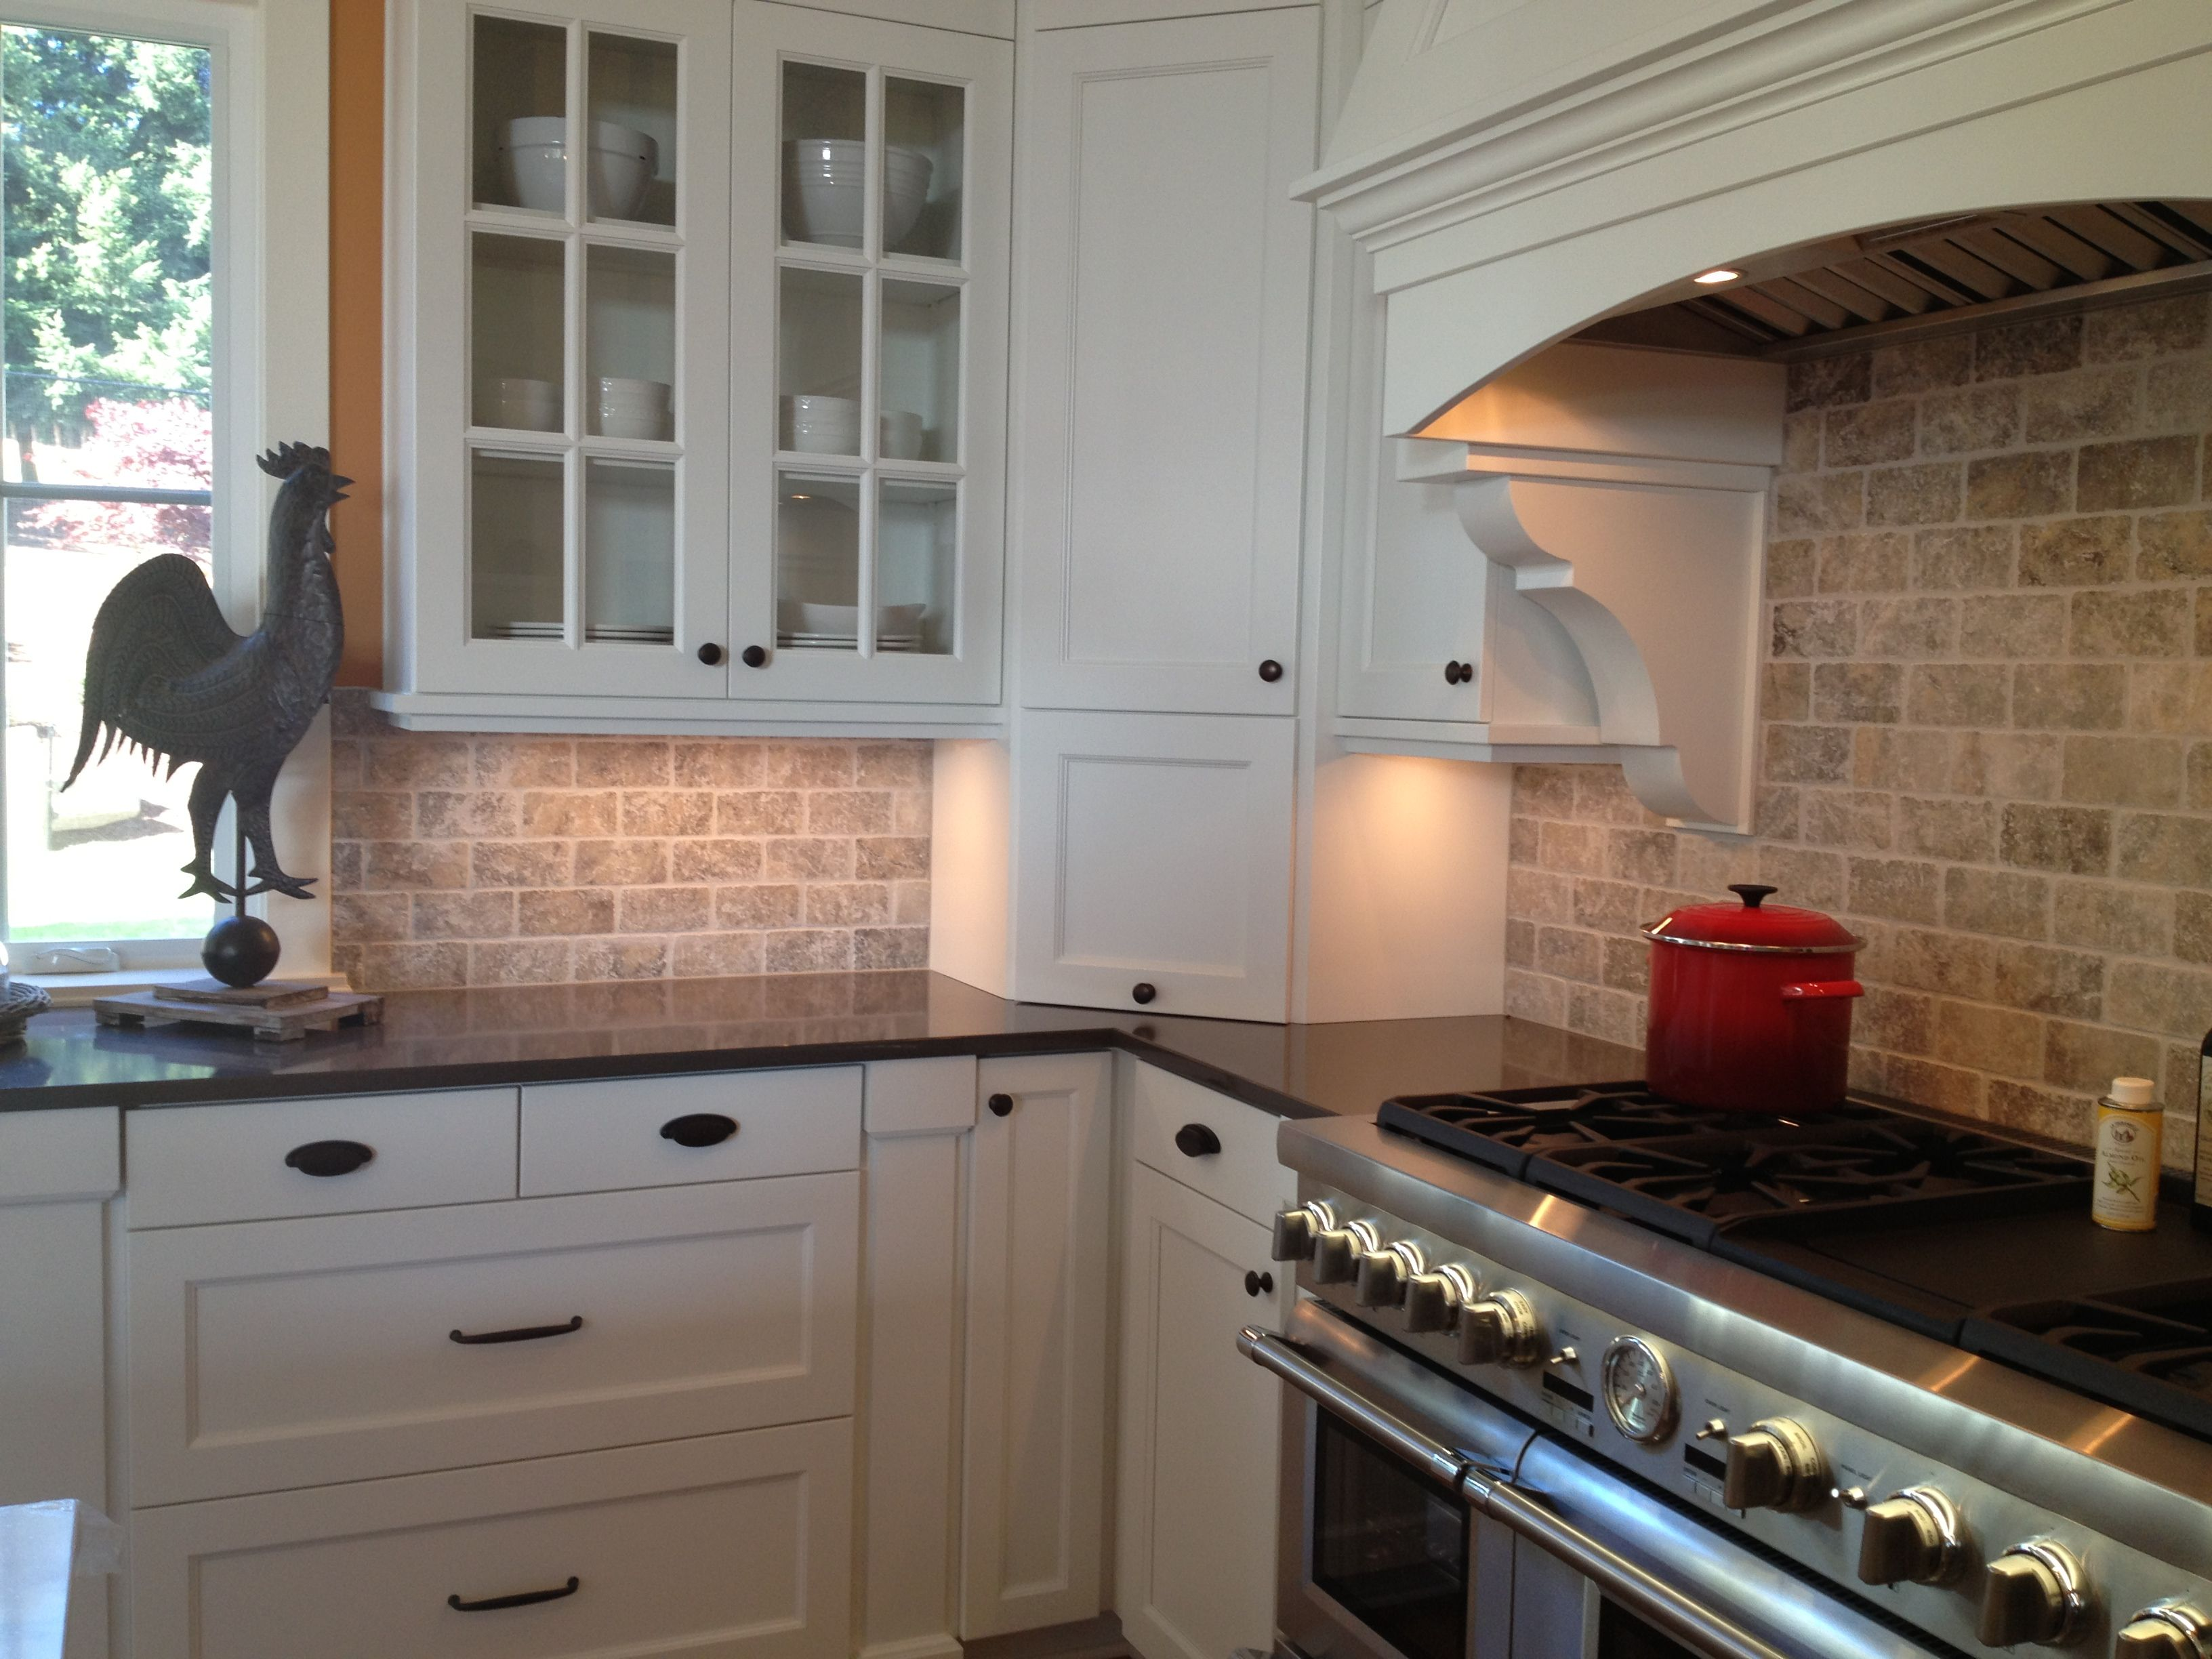 Picture of kitchen travertine backsplash with white cabinets and kitchen backsplash dailygadgetfo Choice Image